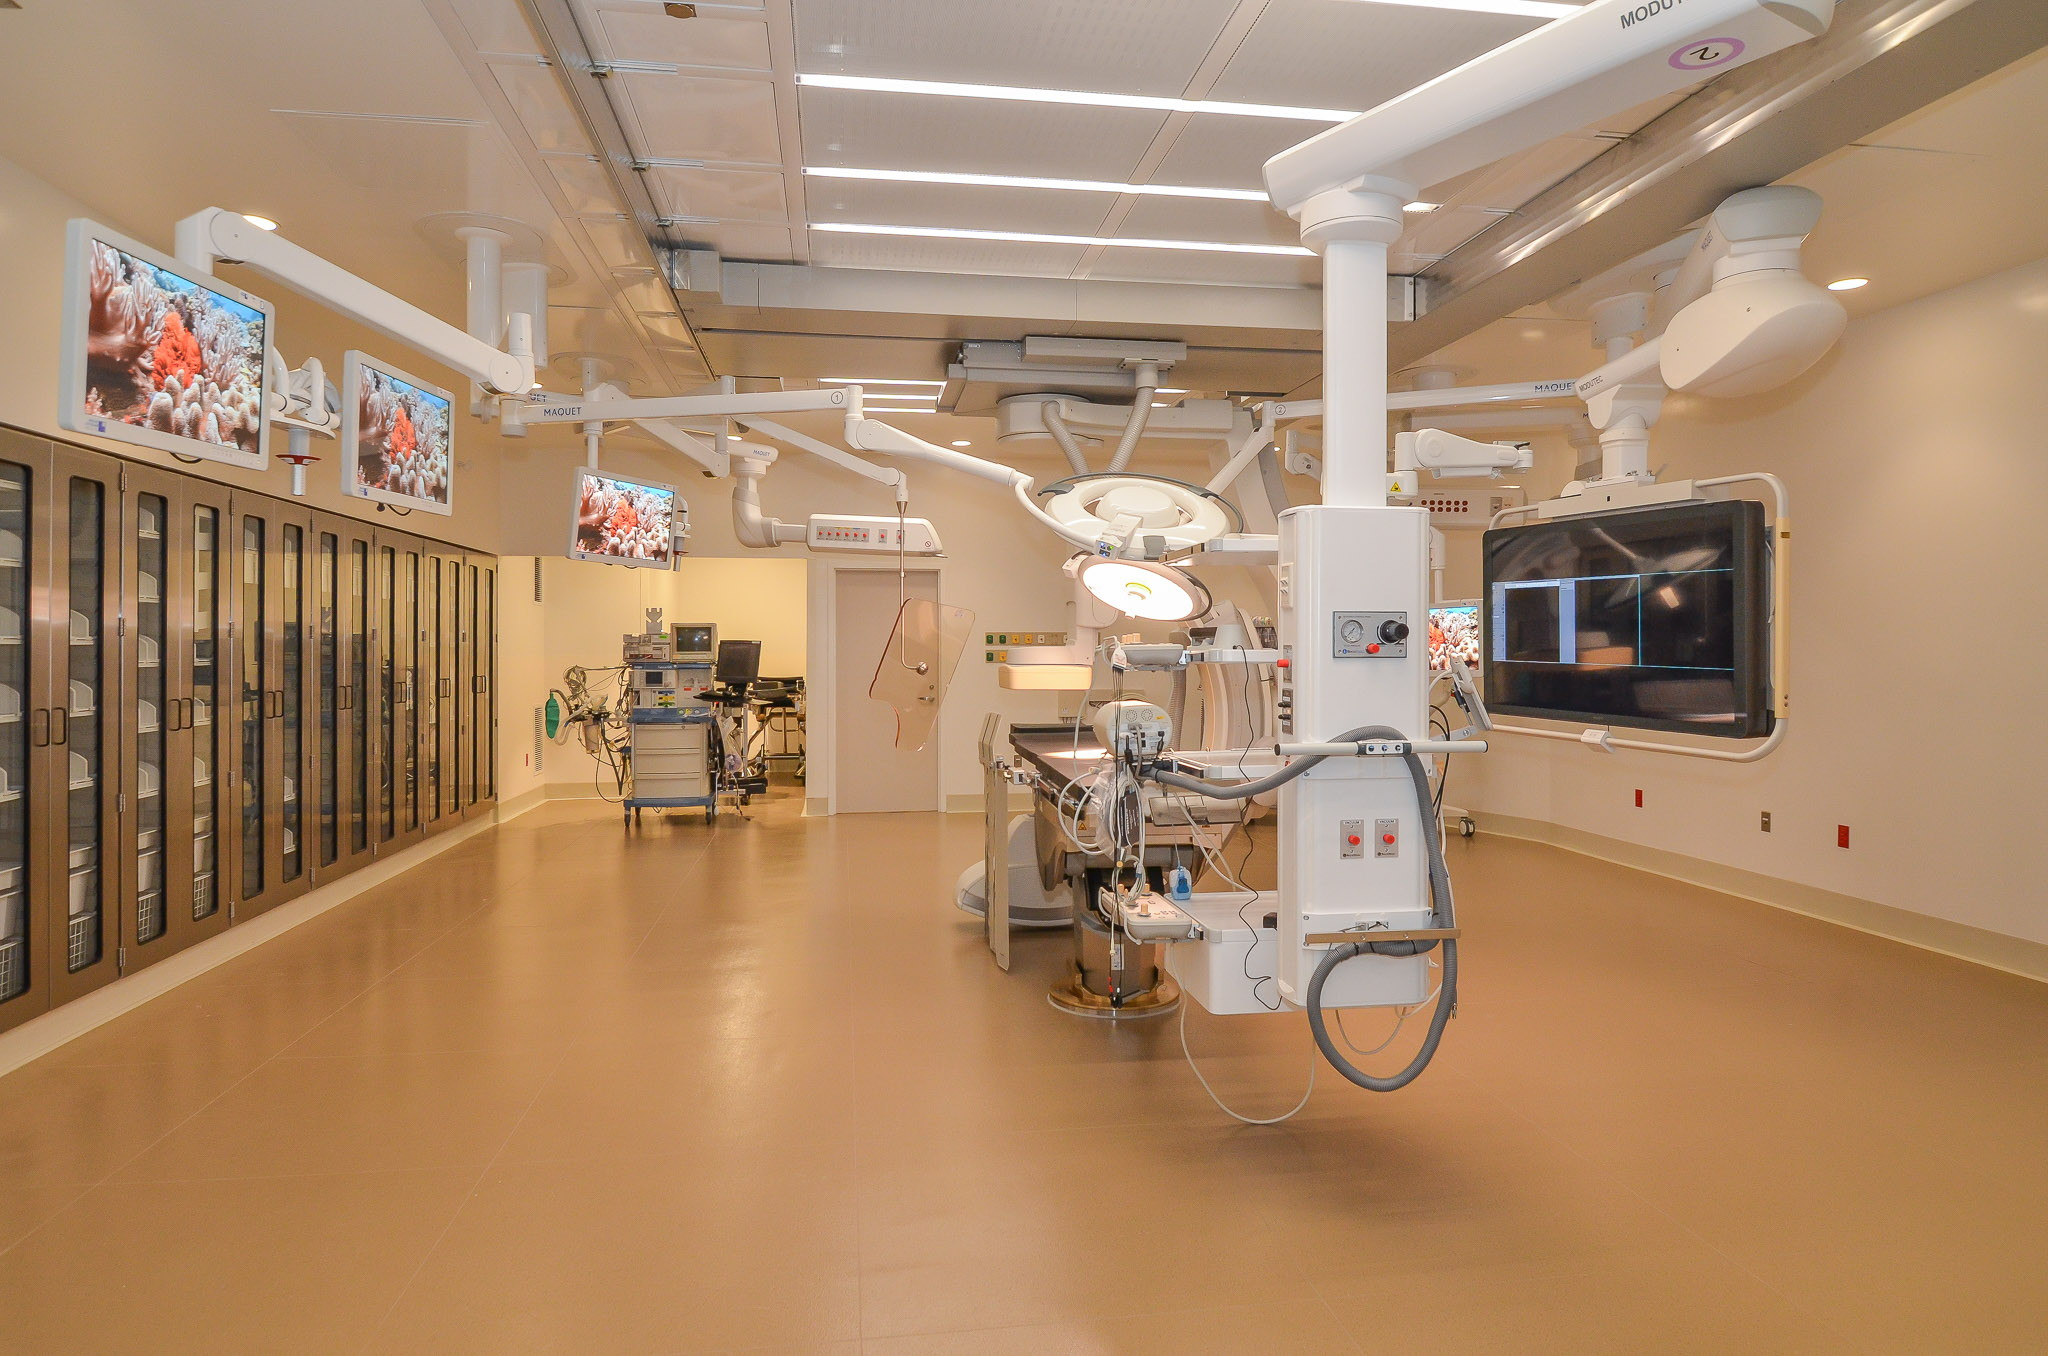 Hybrid-Operating-Room-South-View-HDS-Architecture.jpg